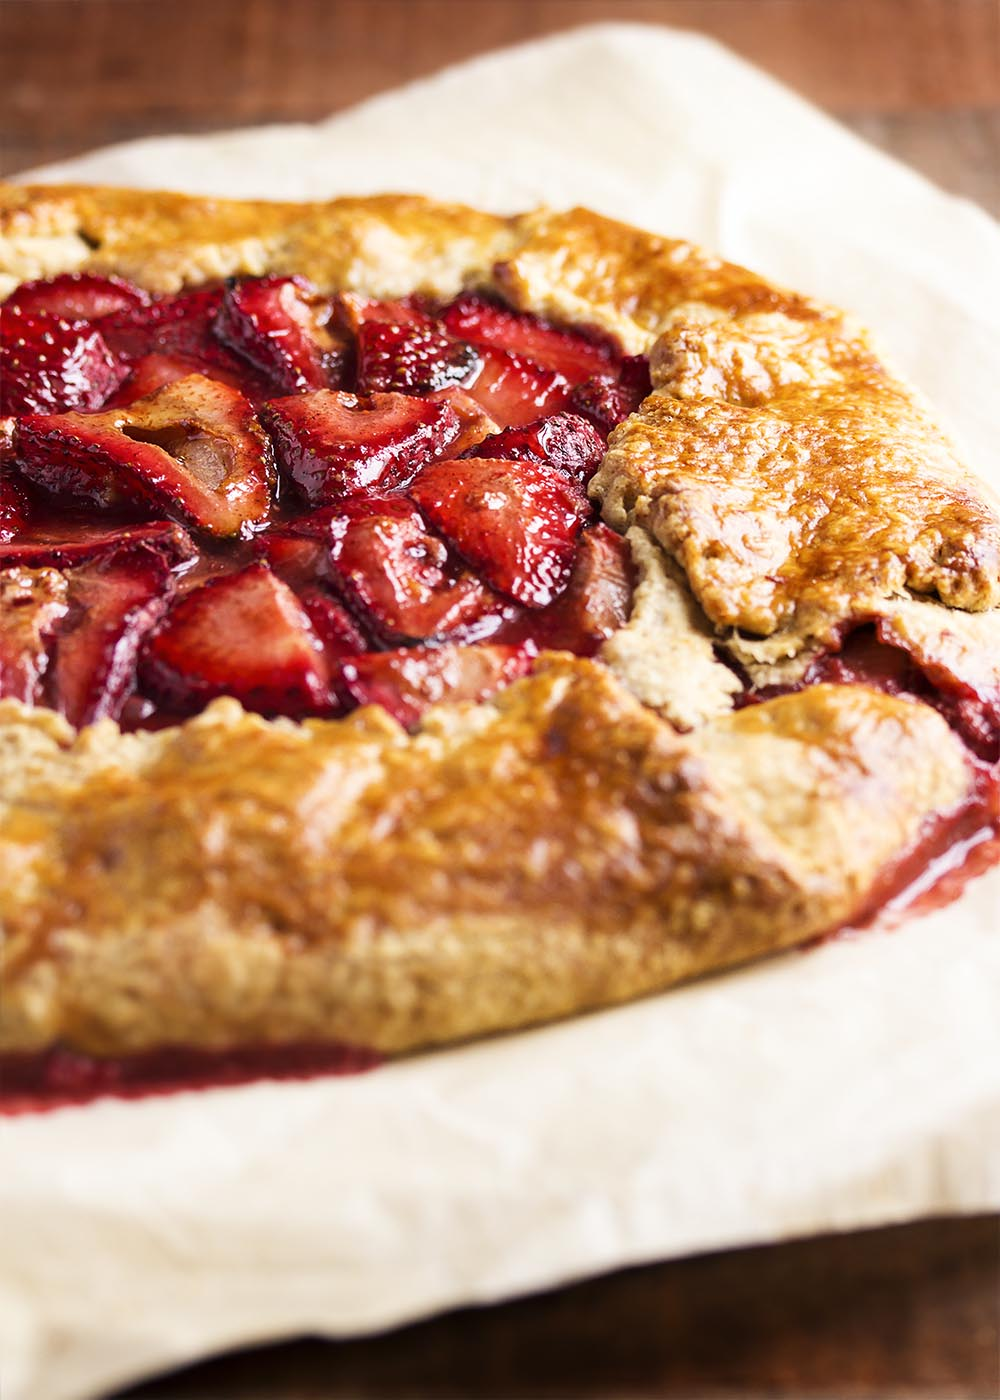 A whole strawberry ricotta crostata full of fresh strawberries and brushed with a honey glaze.